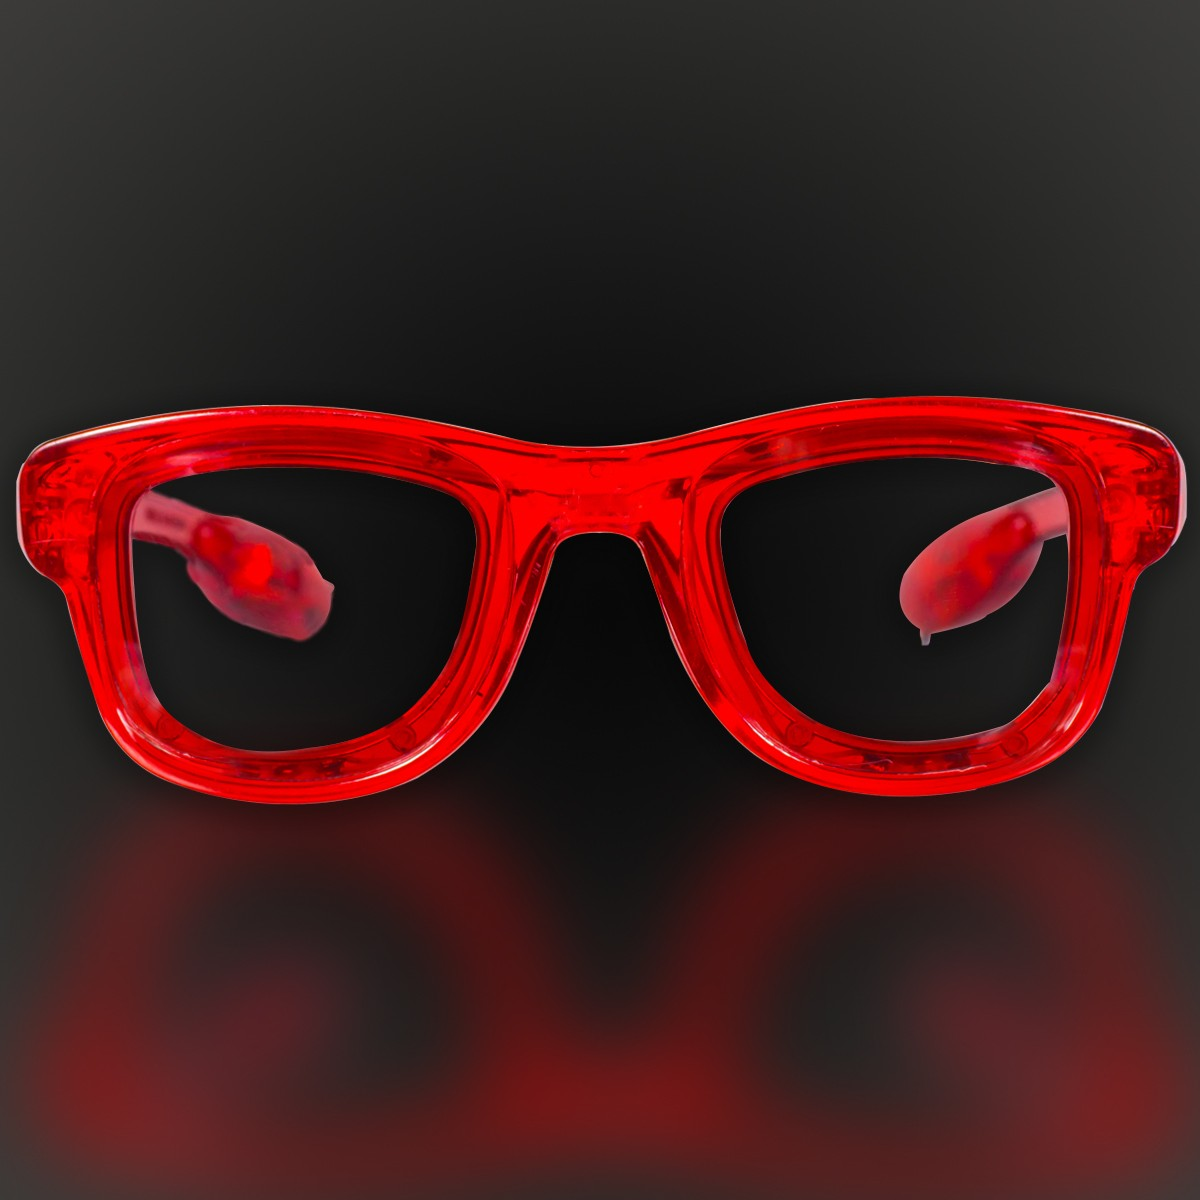 SQUARE LED SUNGLASSES - RED